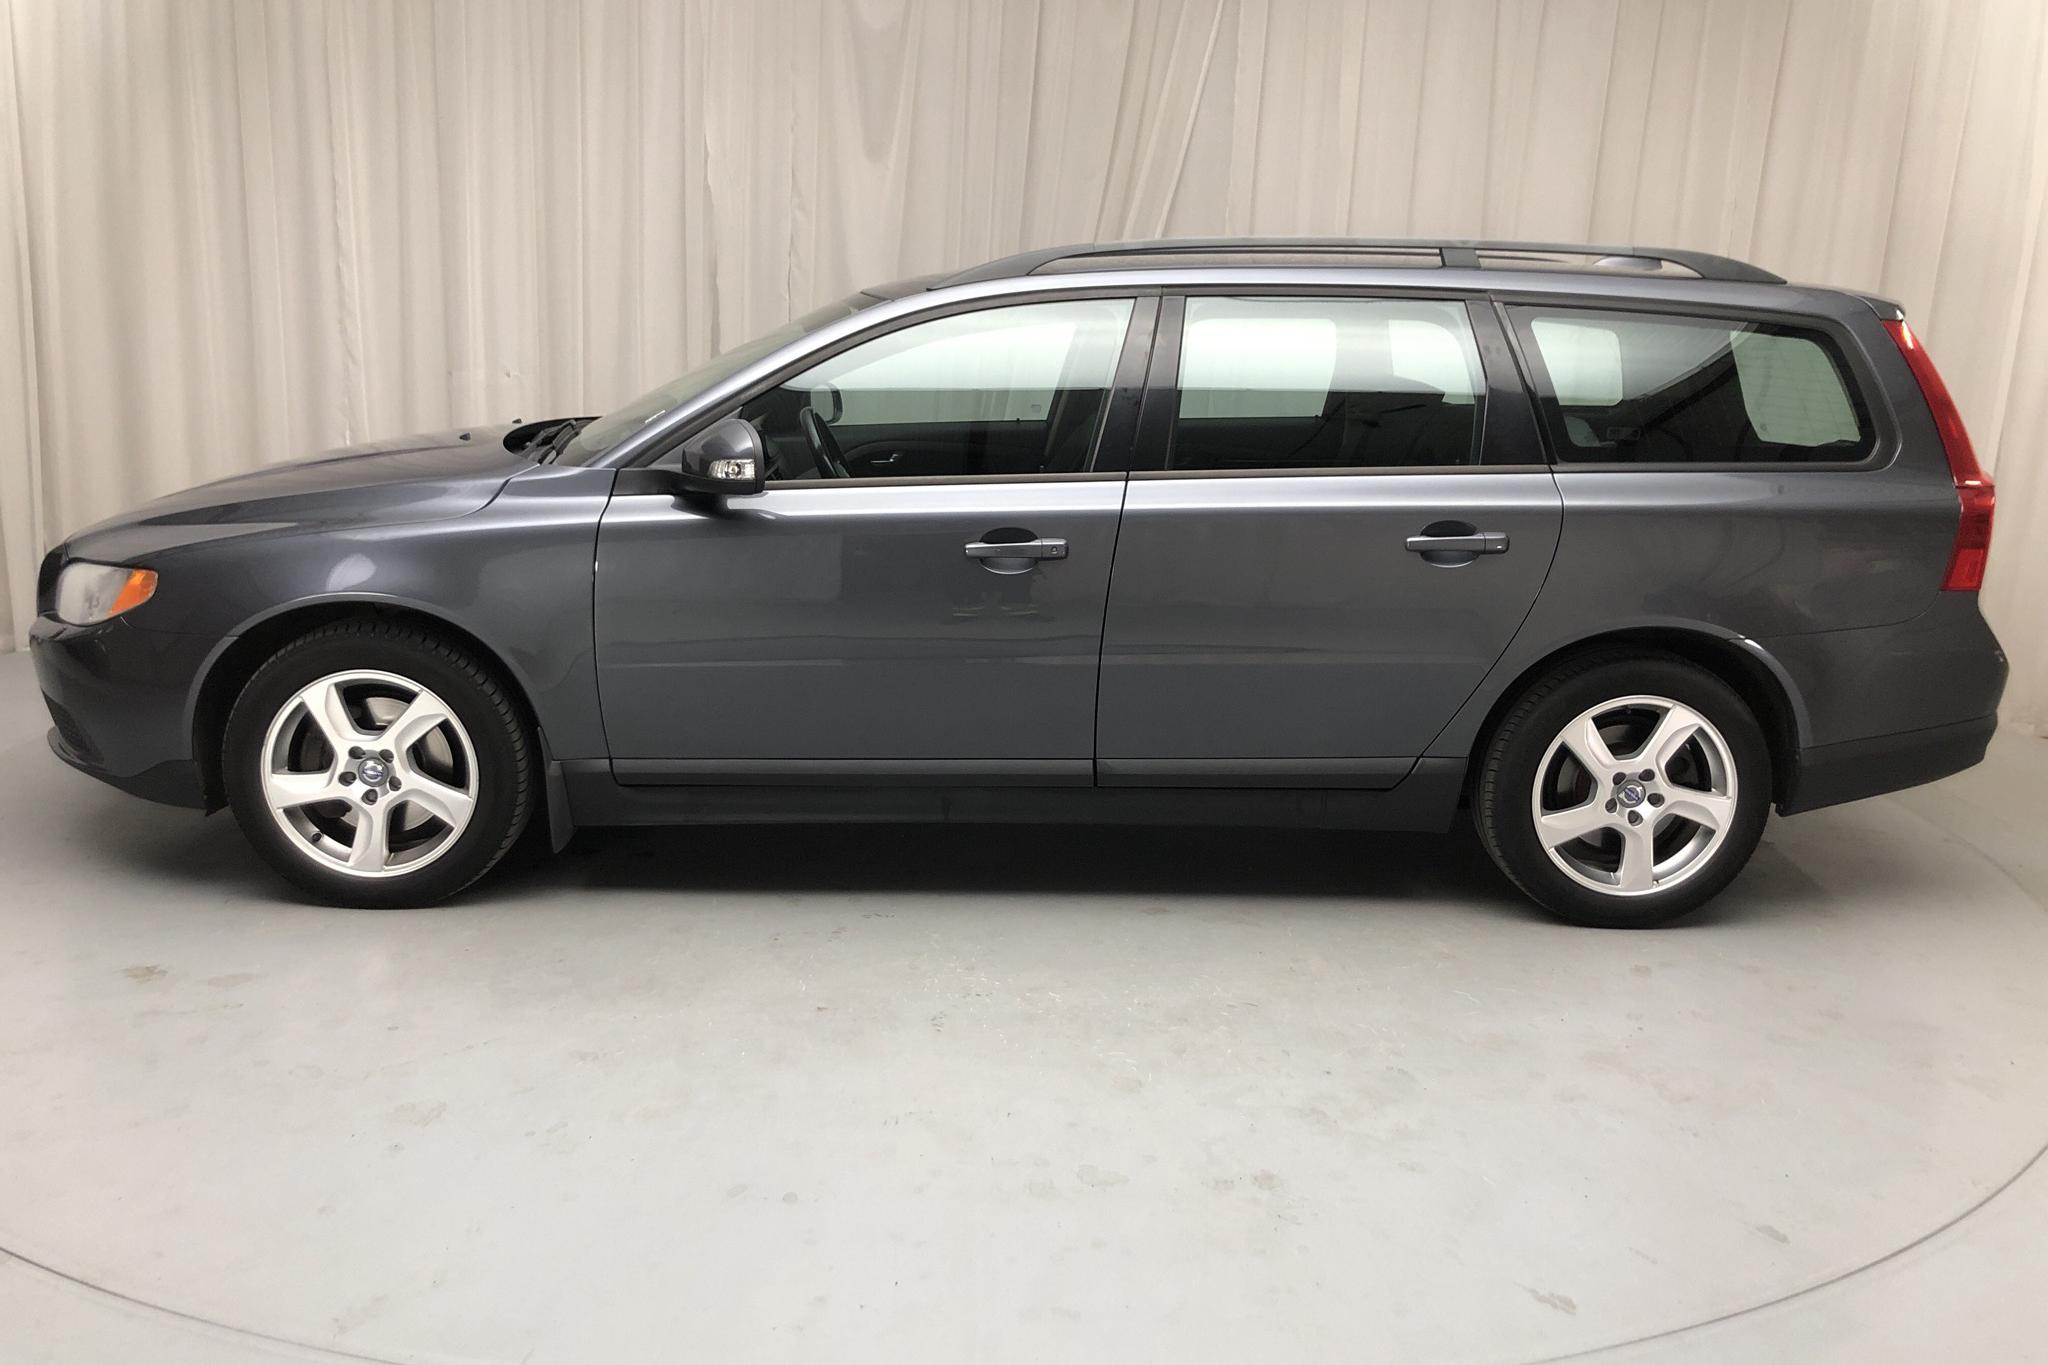 Volvo V70 II 2.4D (163hk) - 236 210 km - Manual - gray - 2008